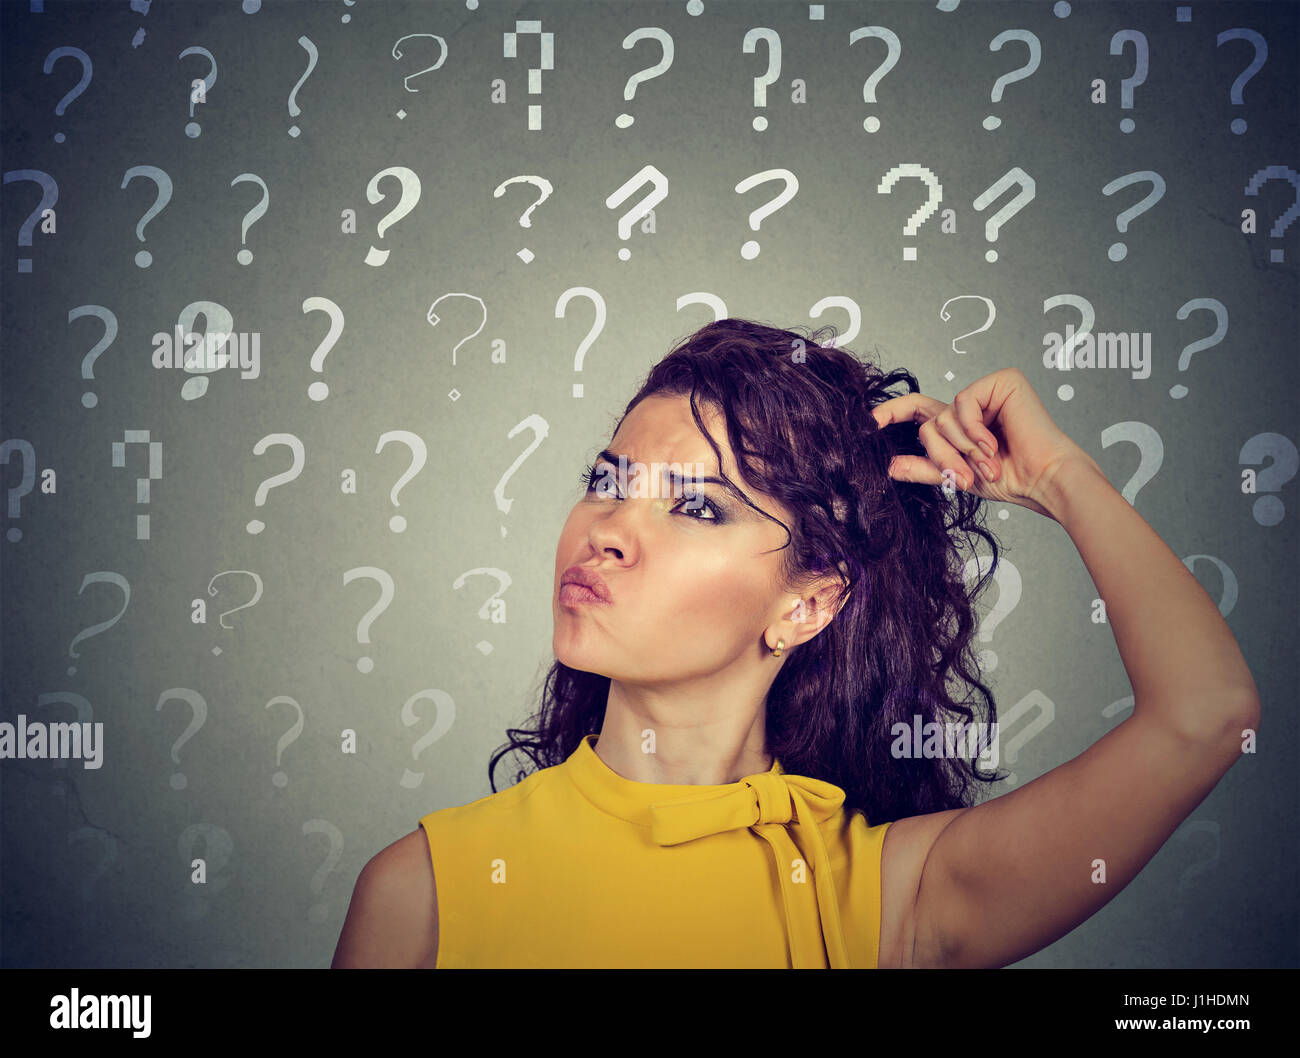 Portrait confused thinking young woman bewildered scratching her head seeks a solution looking up at many question - Stock Image